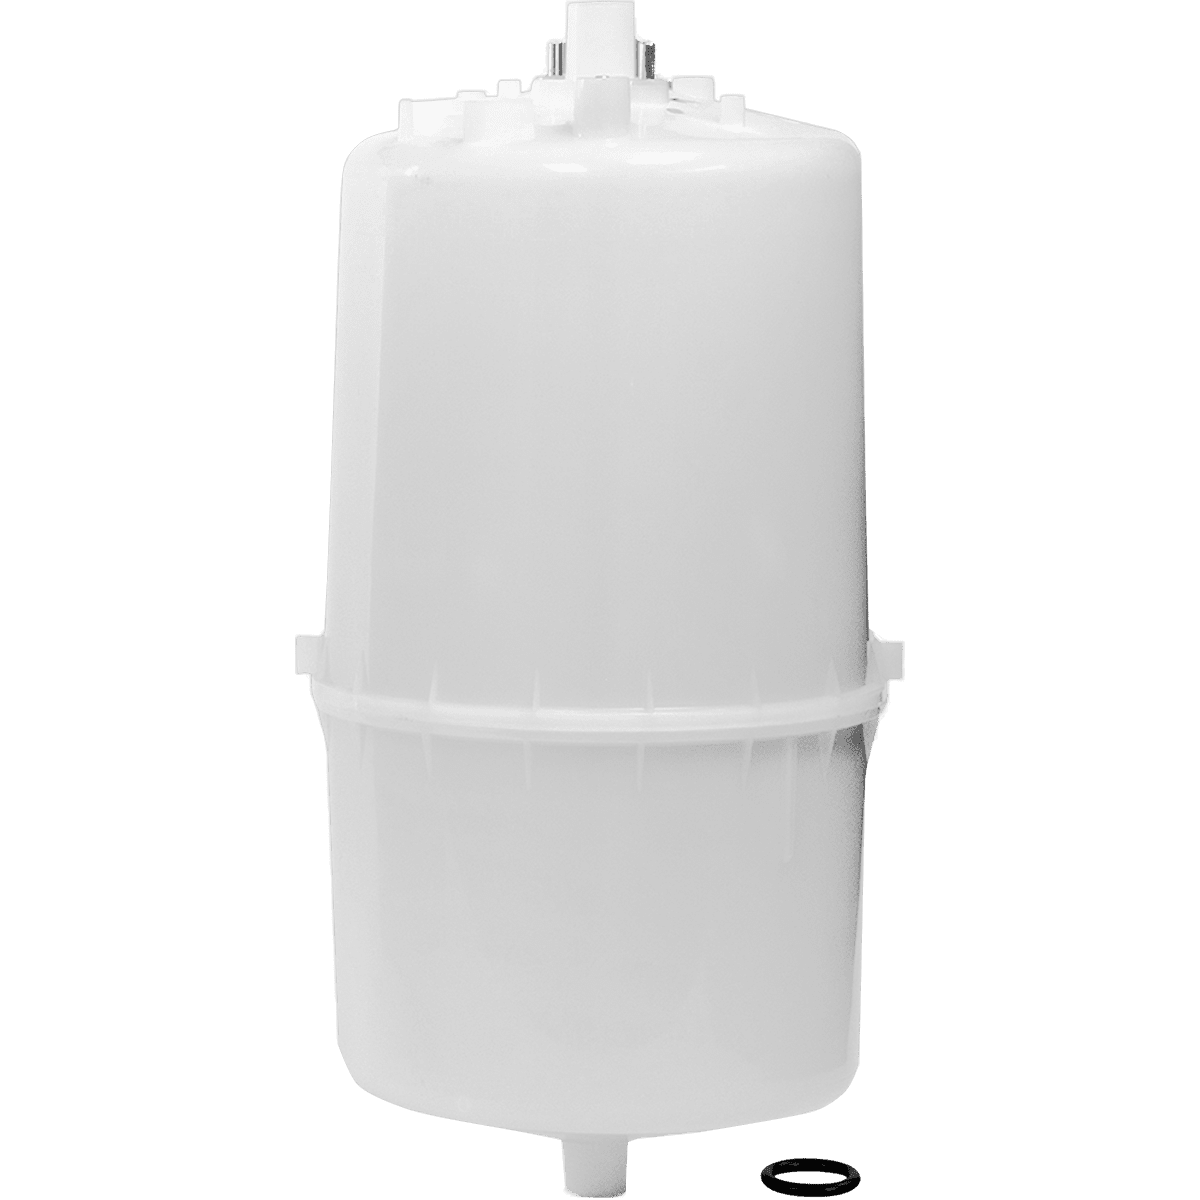 Aprilaire 321aac Steam Humidifier Cylinder (fits Nortec® 321)